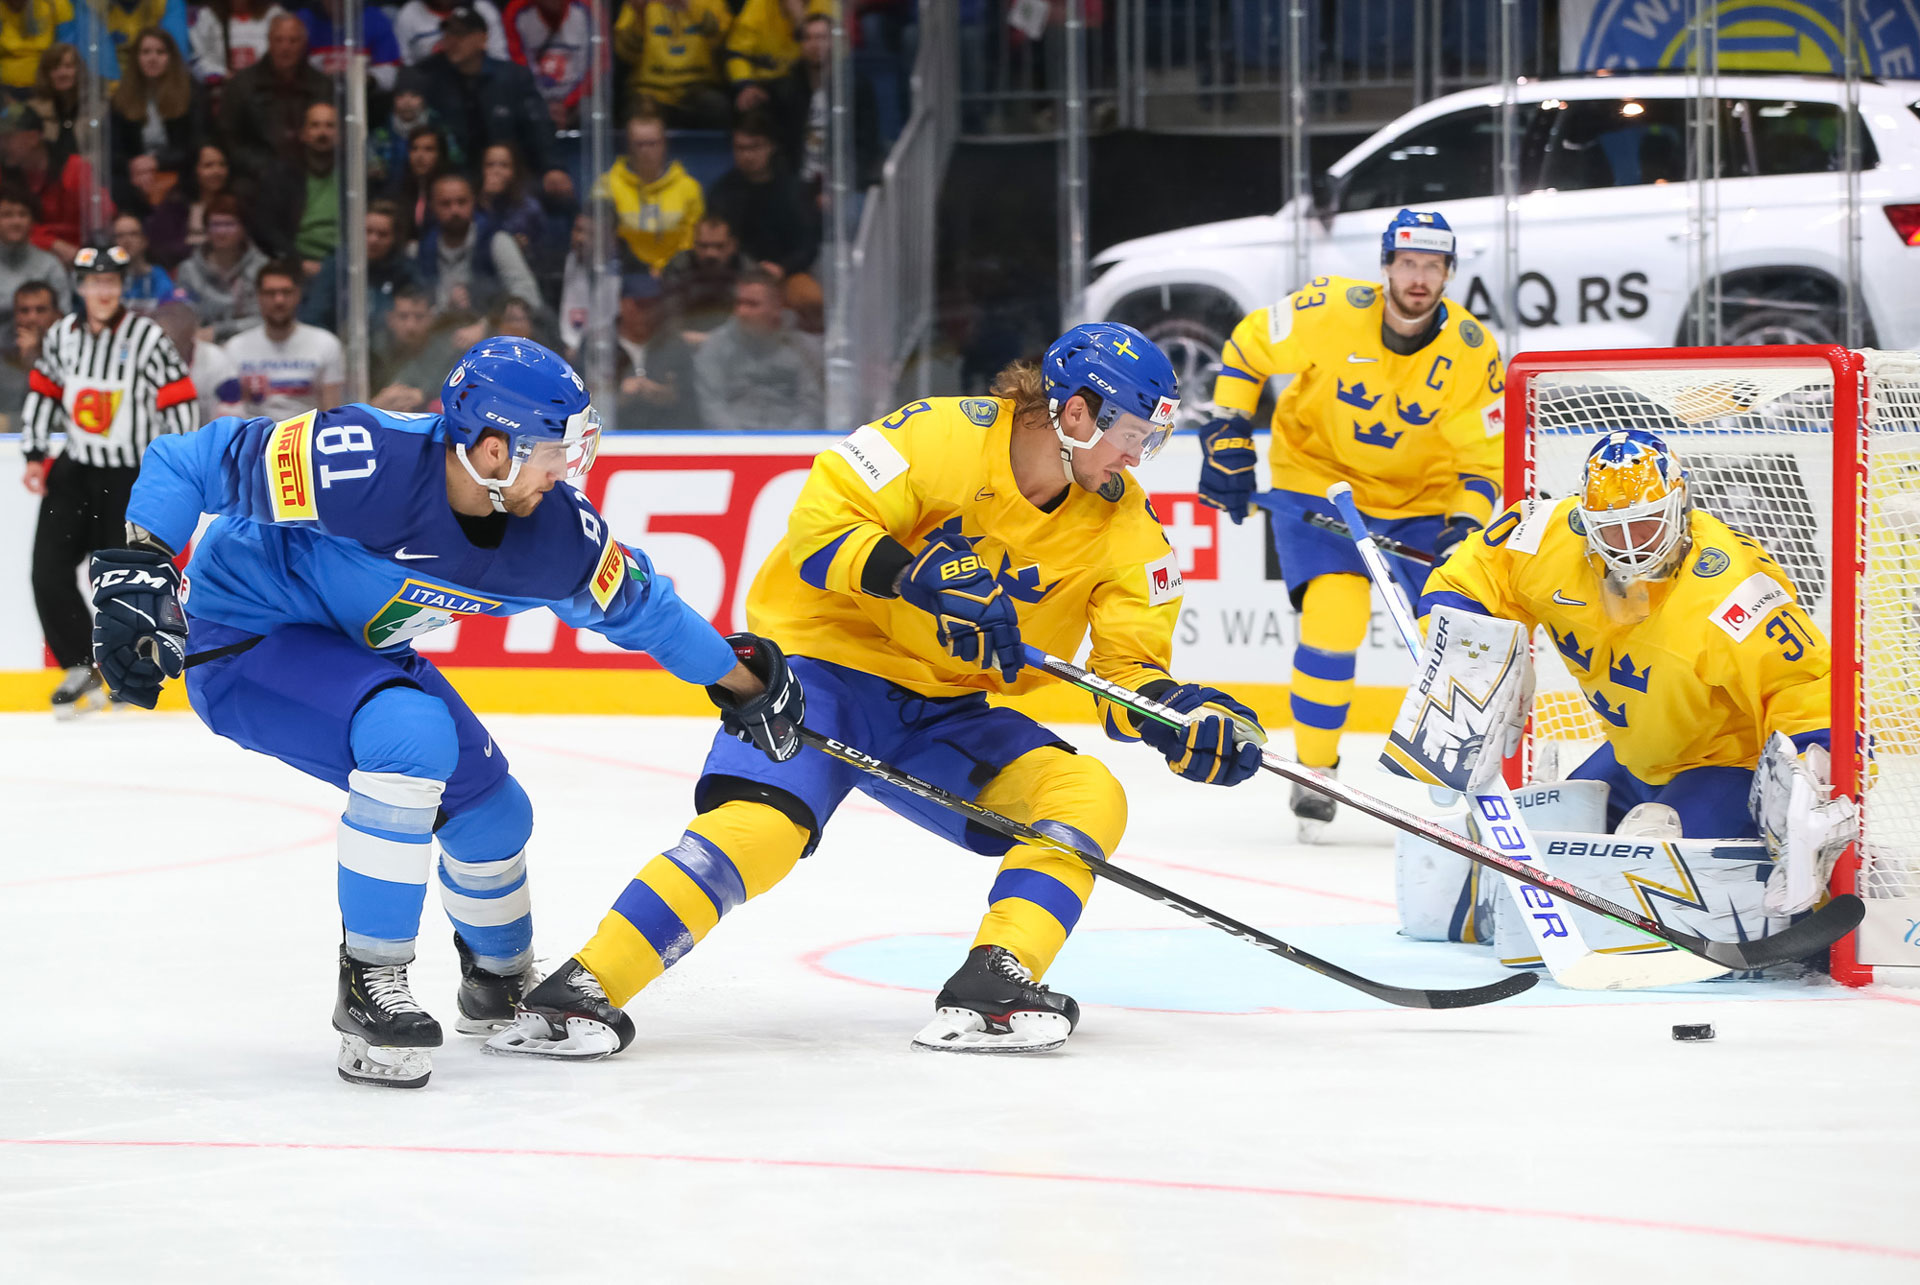 Ice hockey sweden